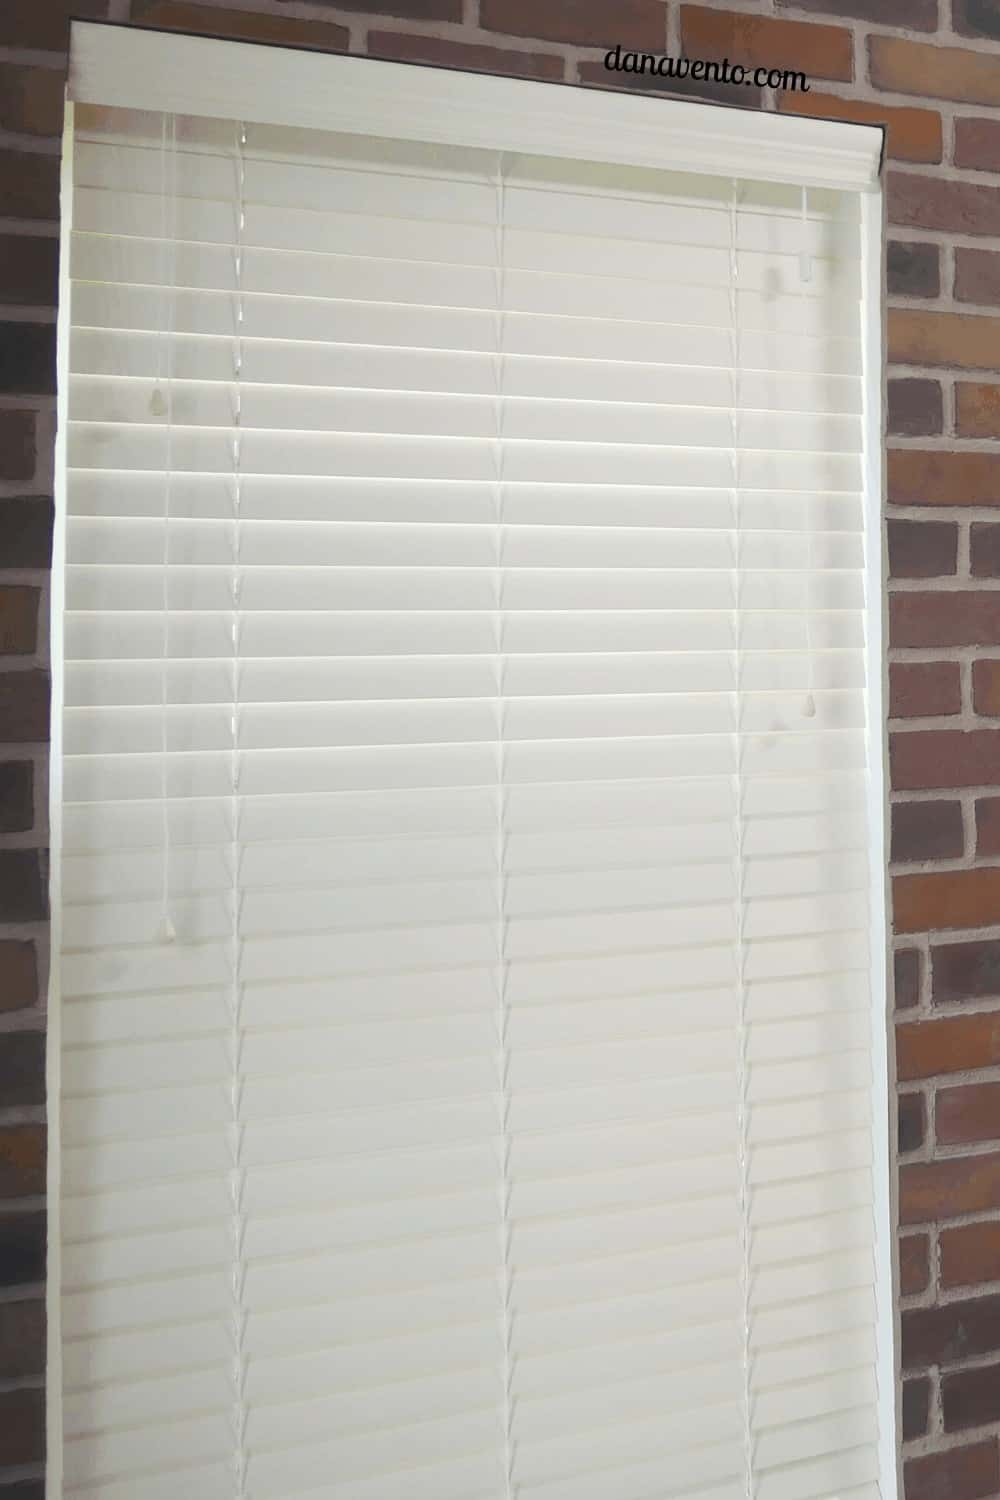 No. 4: Valances & Plastic Clips Suck - so Upgrade Your blinds! Tiered and magnetic